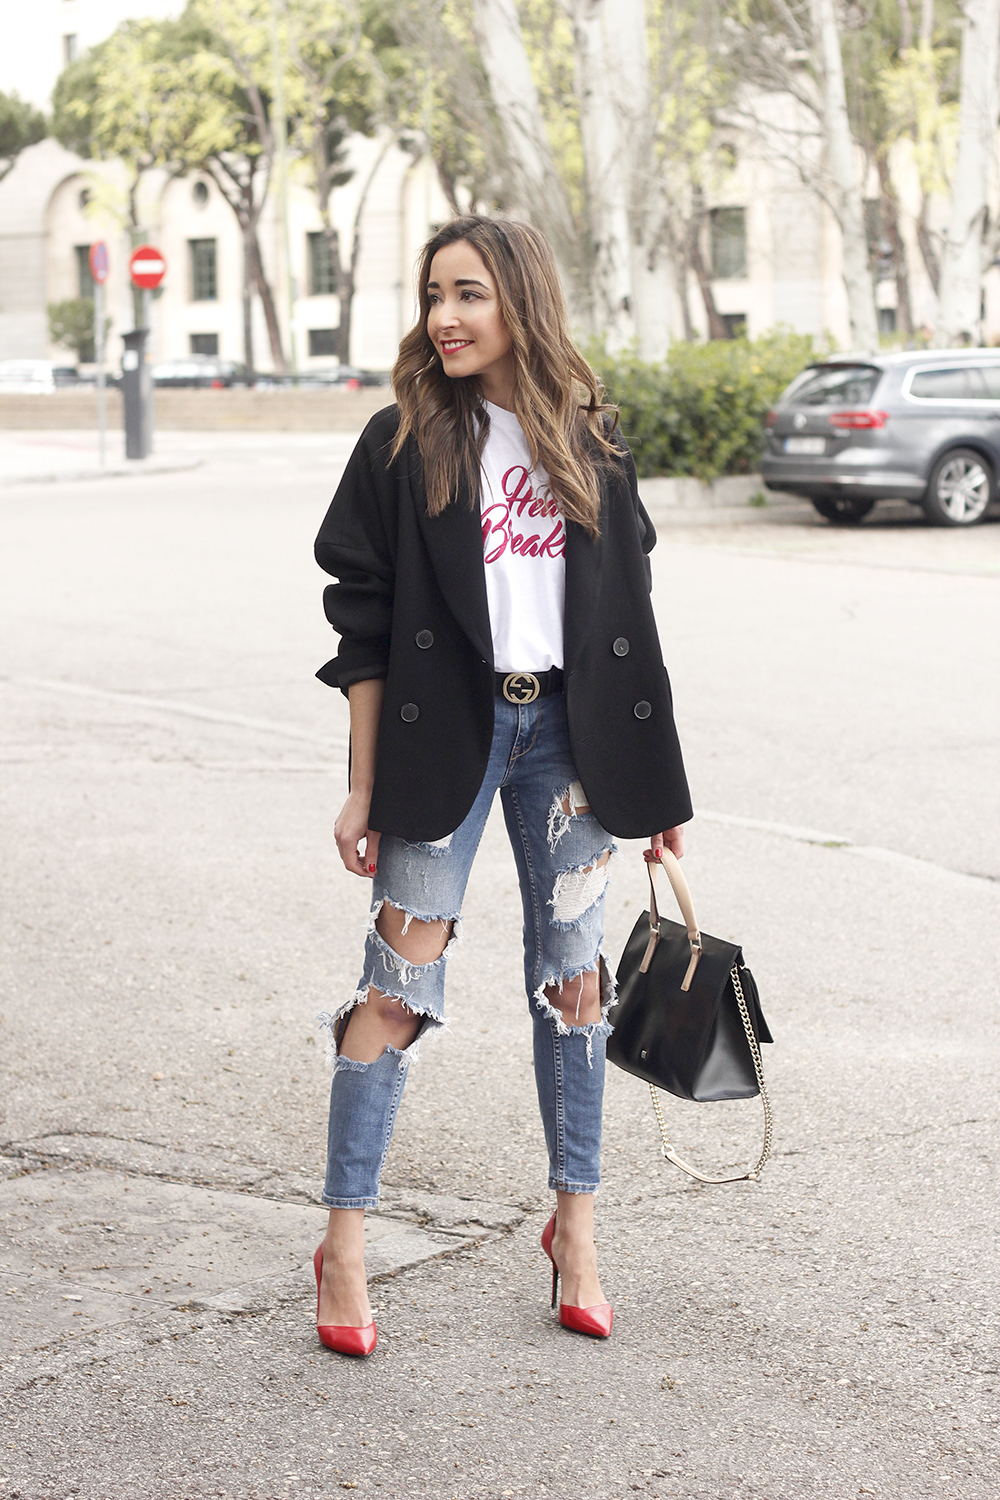 black blazer mango t-shirt heels purificación garcía bag accessories ripped jeans outfit style fashion02